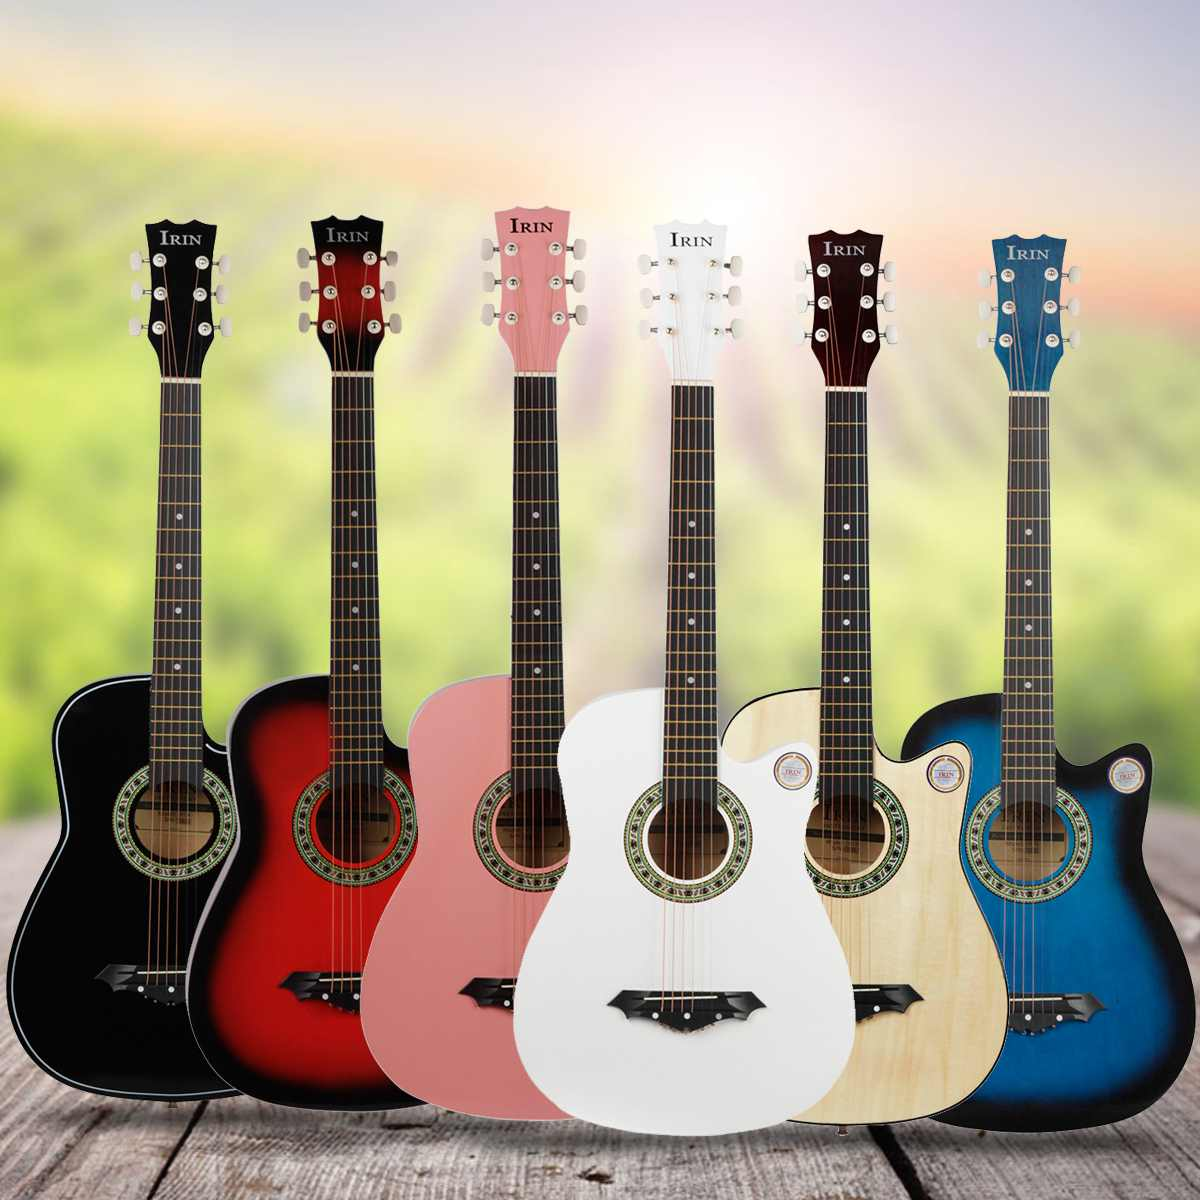 38 Inch Guitar Guitarra Acoustic Folk Guitar For Beginners 6 Strings Basswood Classical Stringed Instrument For Beginners